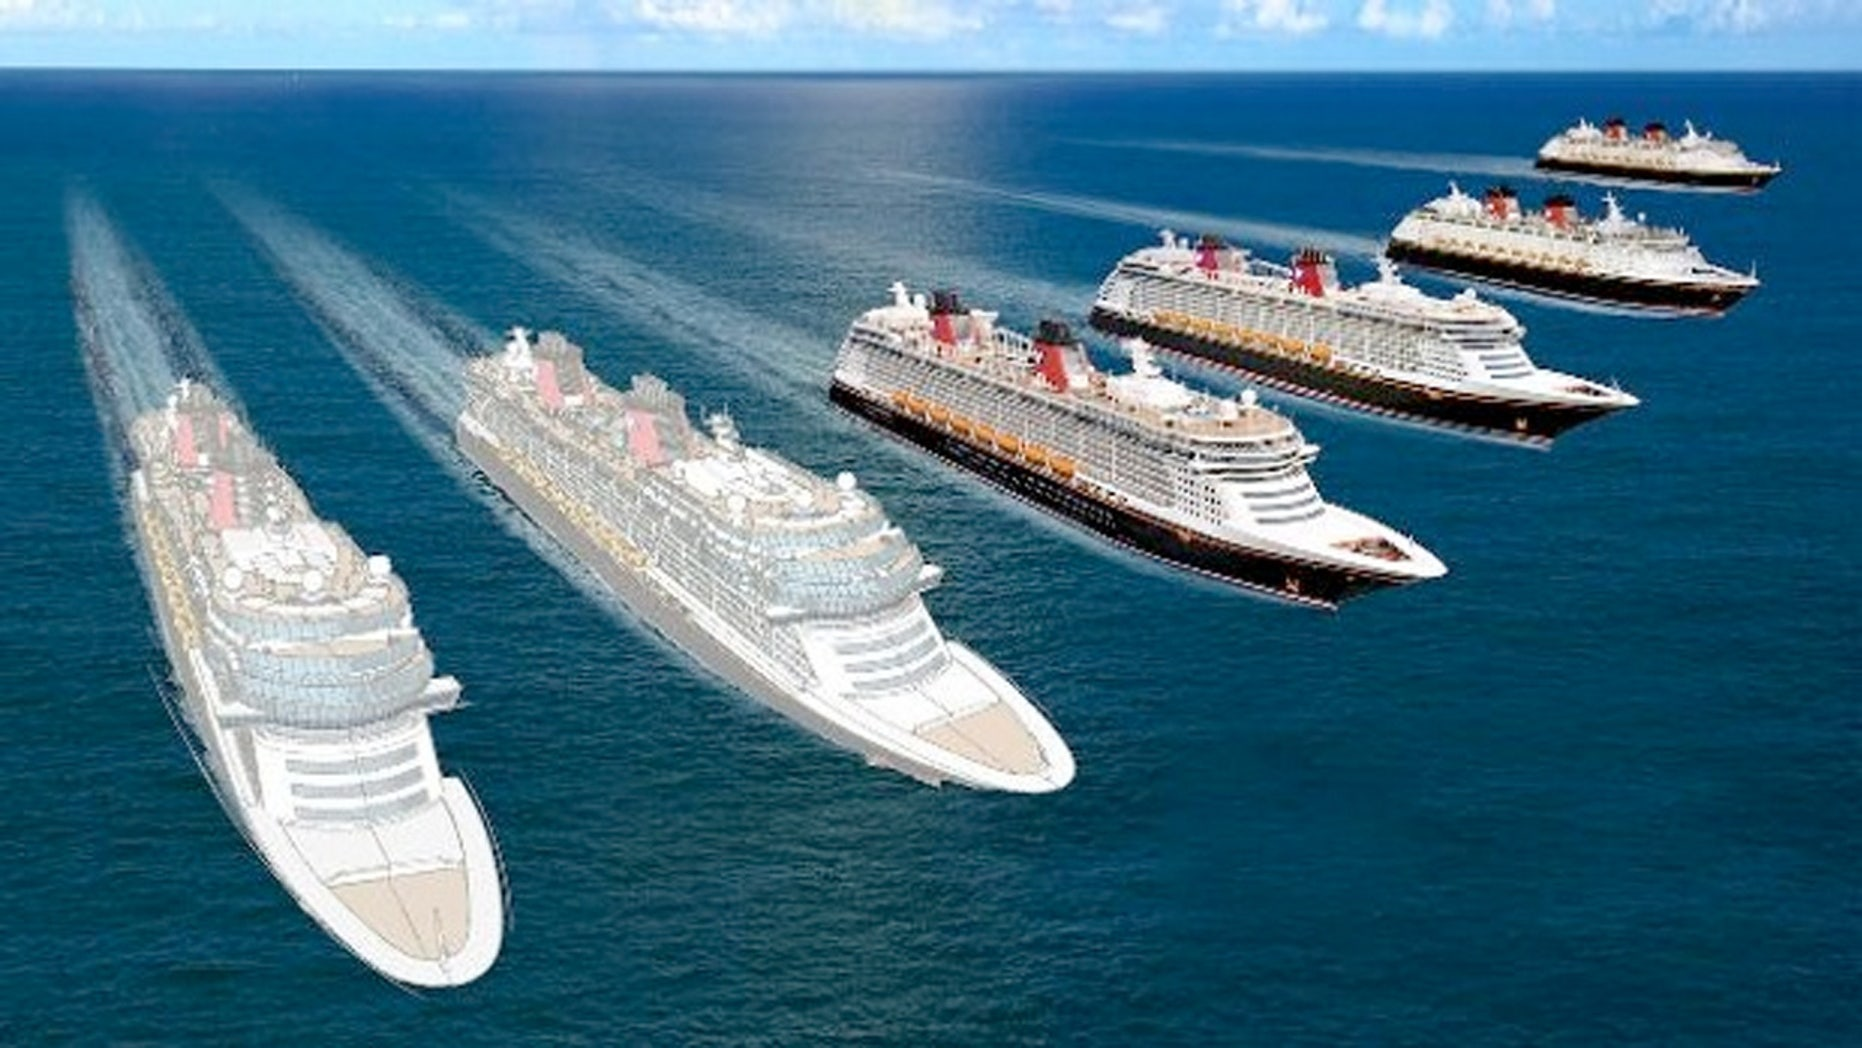 The two new Disney ships will be slightly larger than the newest Disney Cruise Line ships, the Disney Dream and the Disney Fantasy - and each is planned to include about 1,250 guest staterooms.